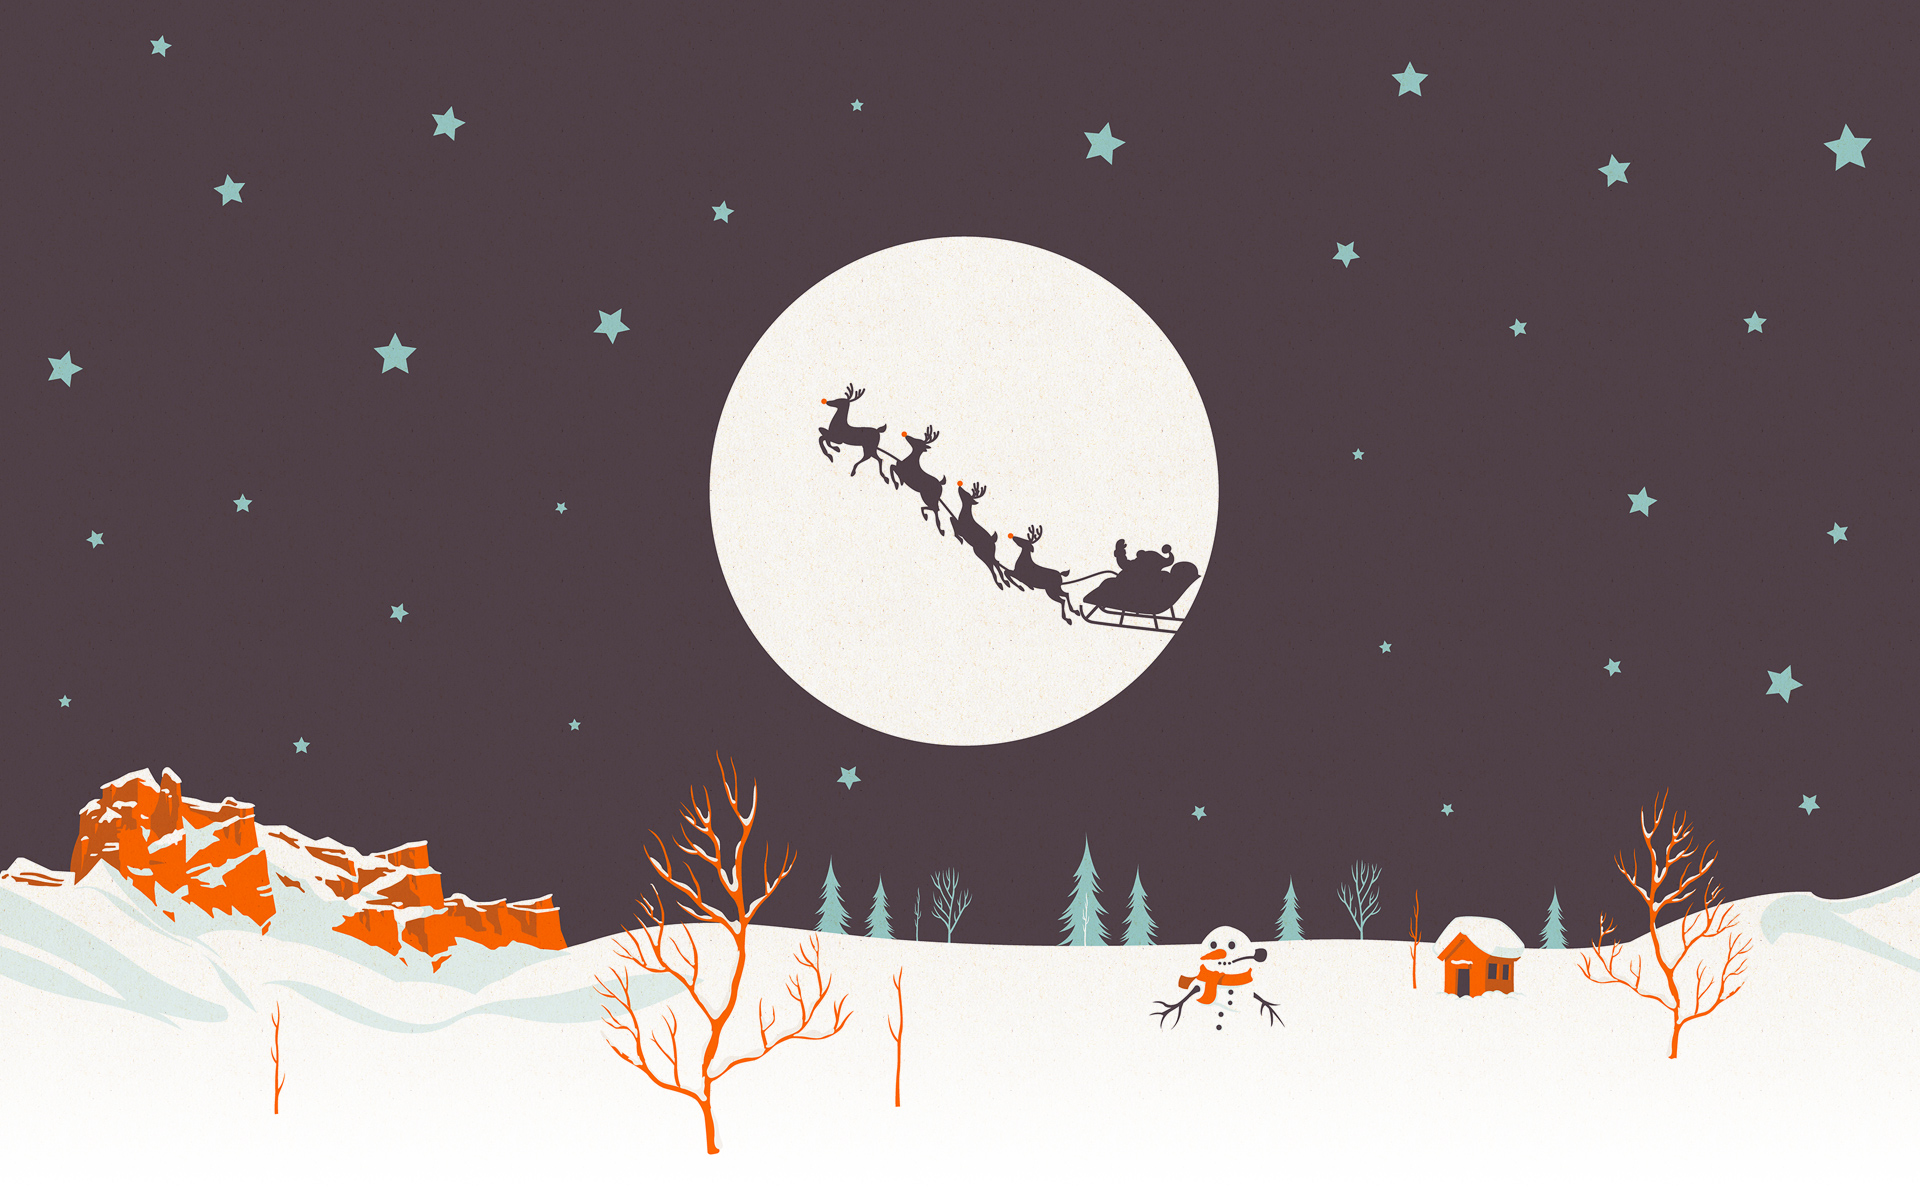 Christmas Desktop Wallpaper Illustration